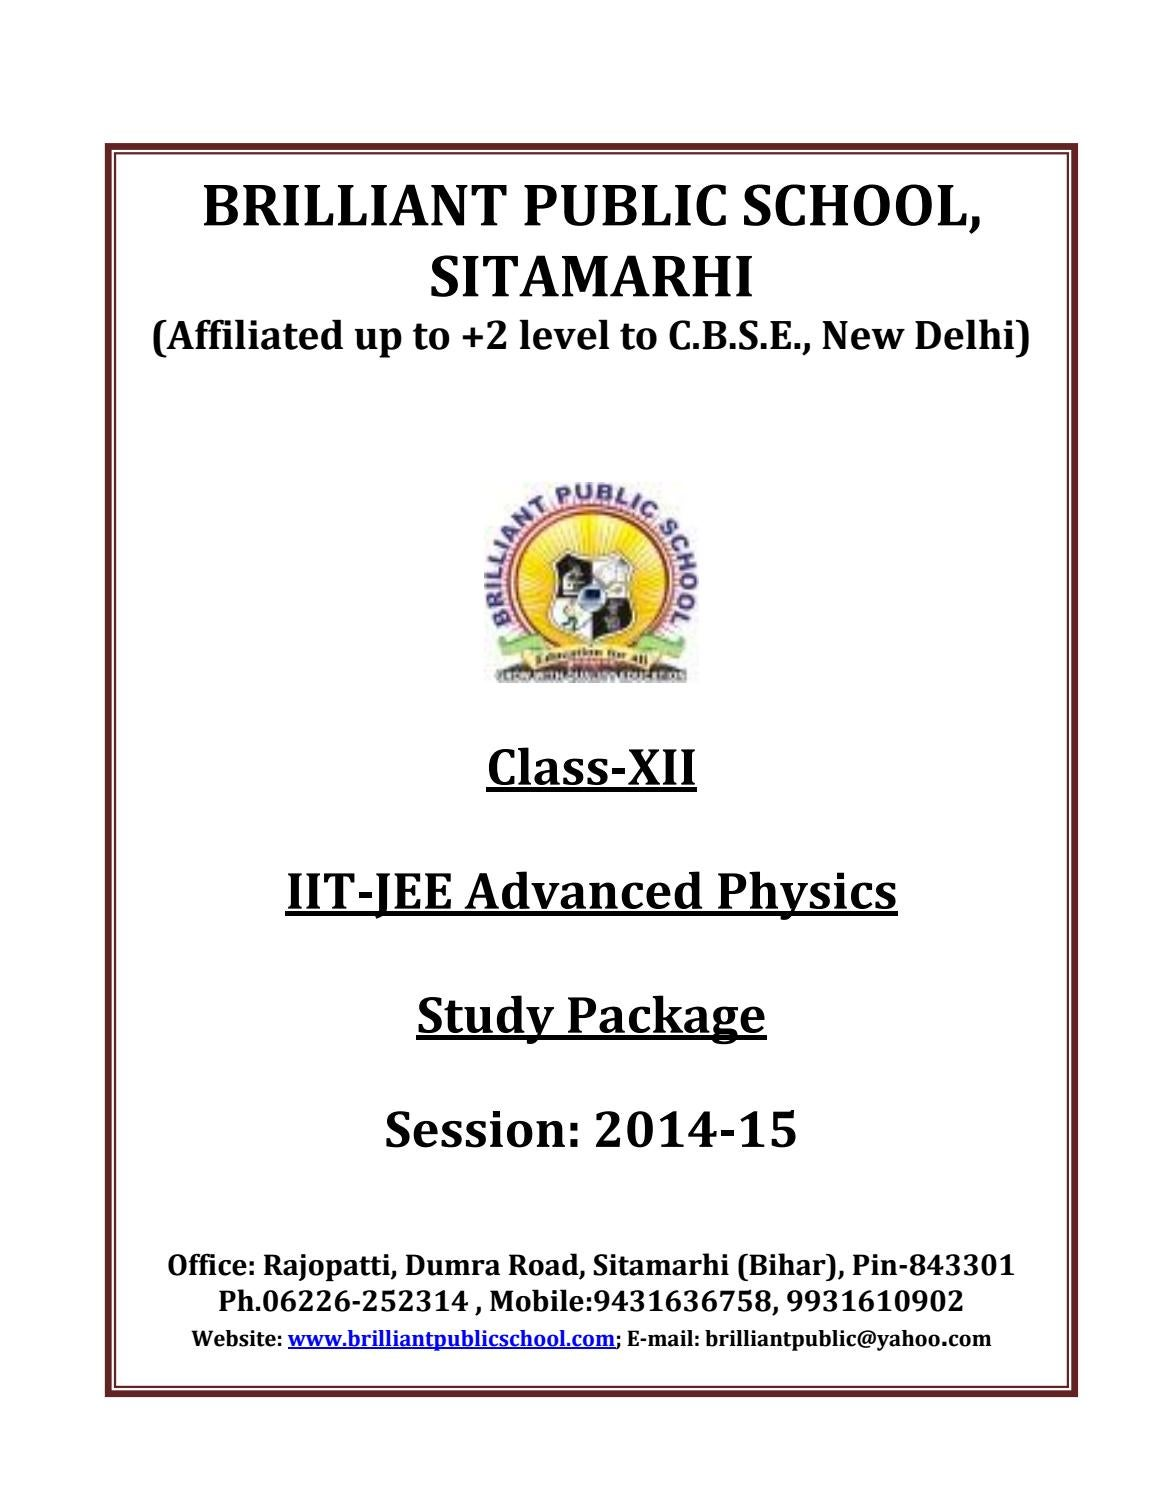 Doc 126 B P S Xii Physics Iit Jee Advanced Study Package 2014 15 By Only Source Up To 100ma So The Circuit Below Is Equally A Bad Idea Sdharmaraj Issuu